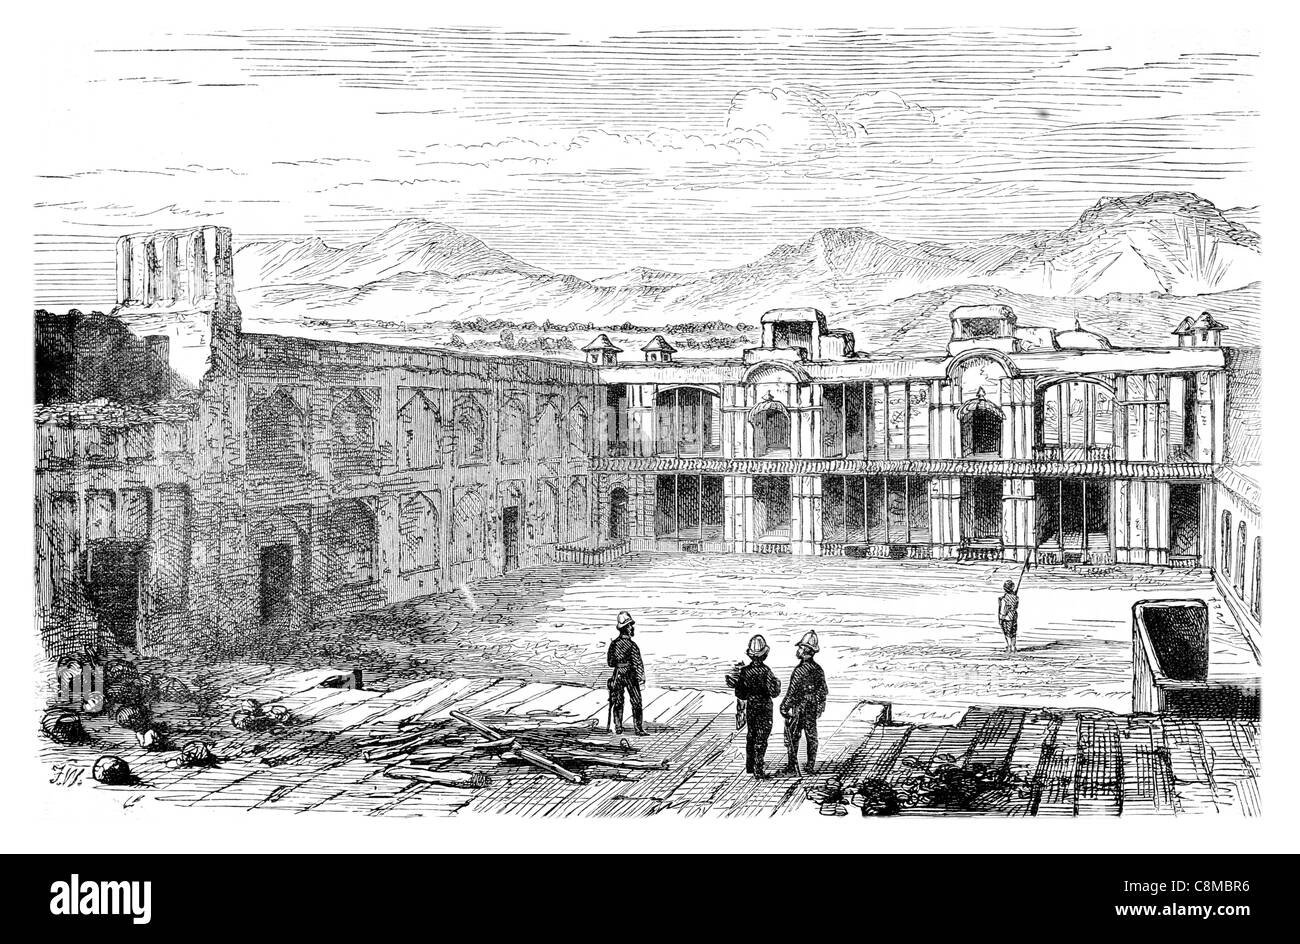 Interior British residency Cabul Barracks Barrack military accommodation housing blocks soldiers training camp - Stock Image